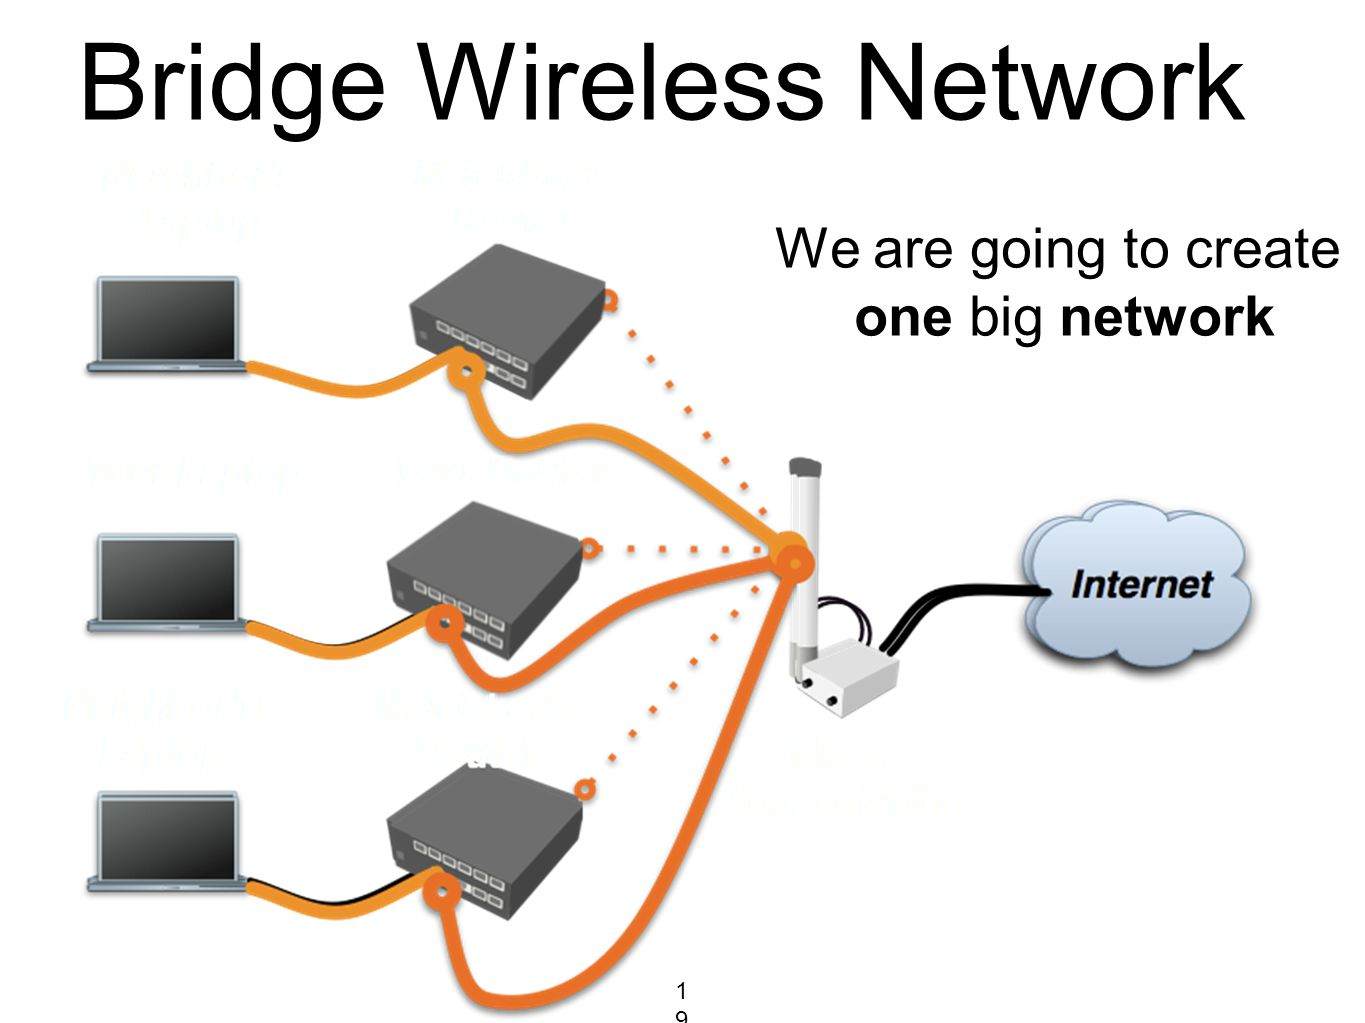 Bridge Wireless Network We are going to create one big network 191191191